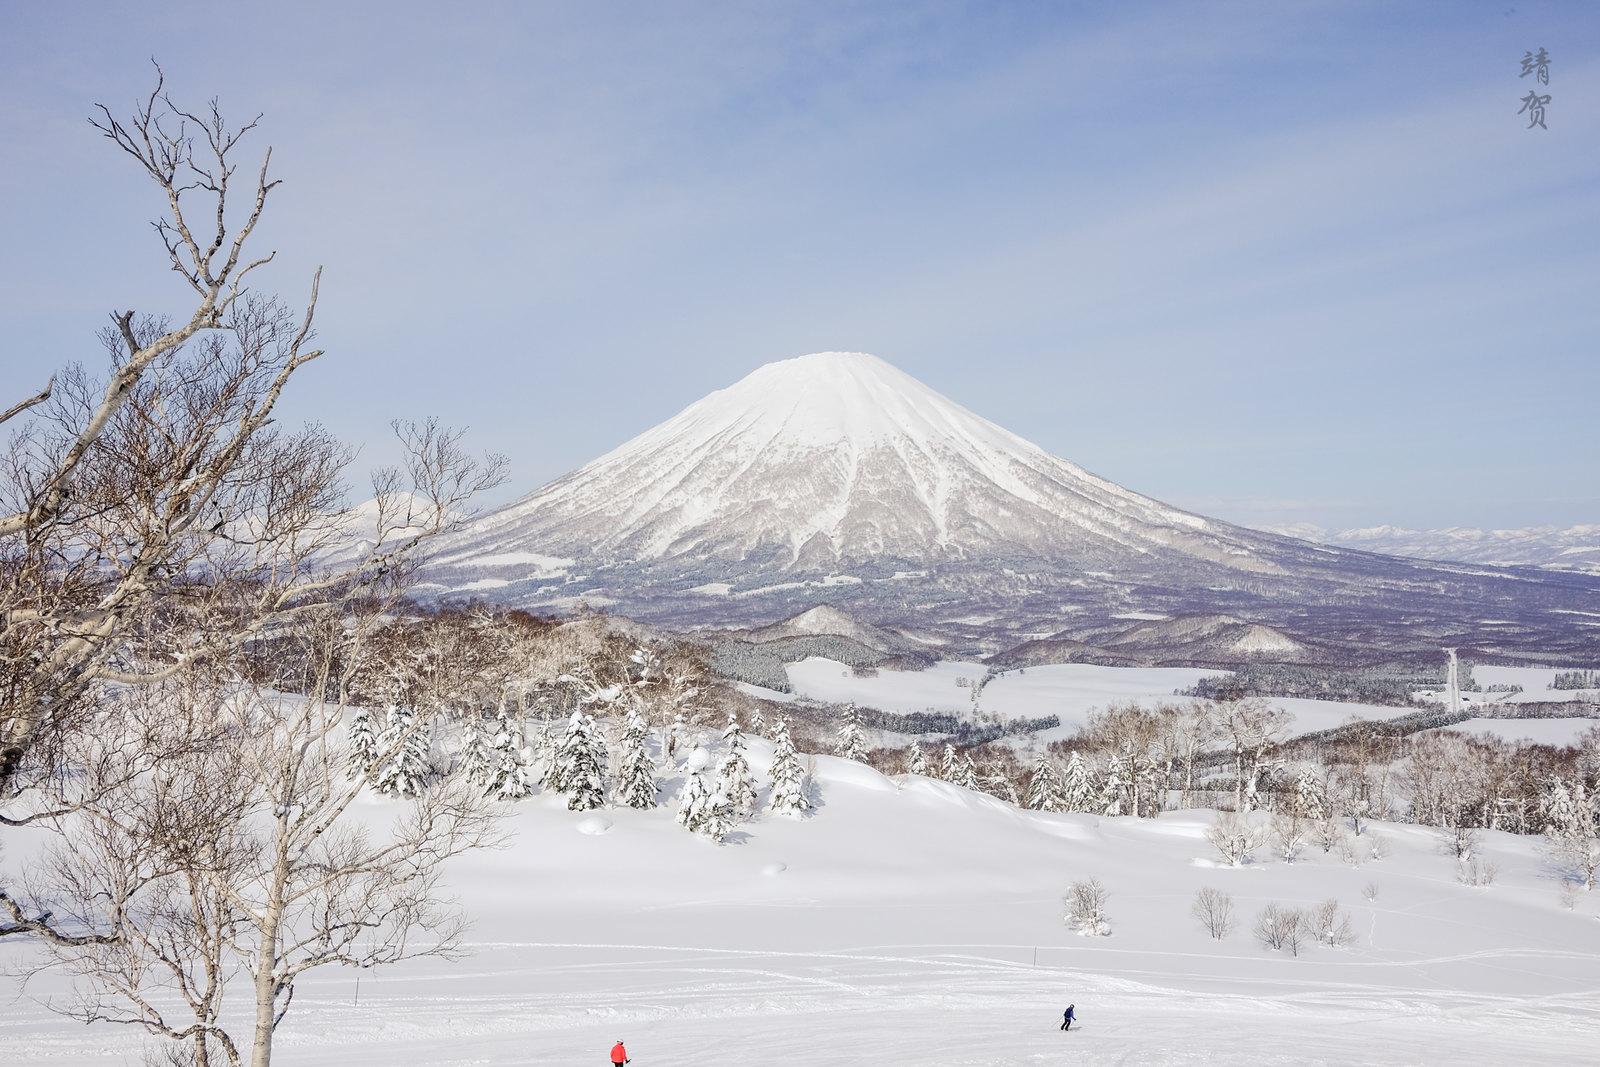 View of Mt Yotei while skiing